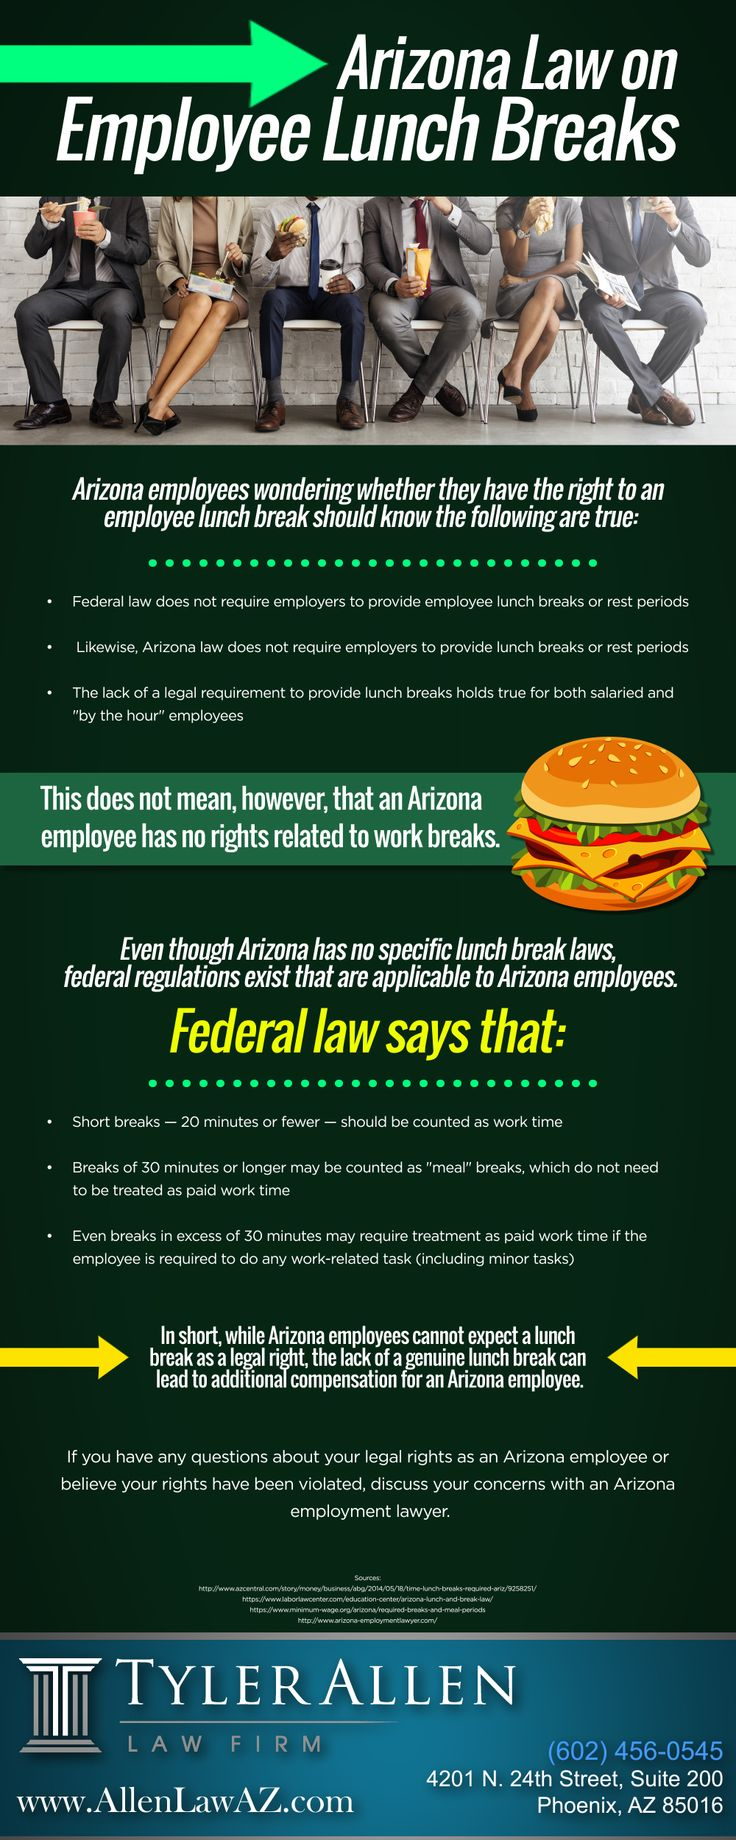 Arizona Law on Employee Lunch Breaks